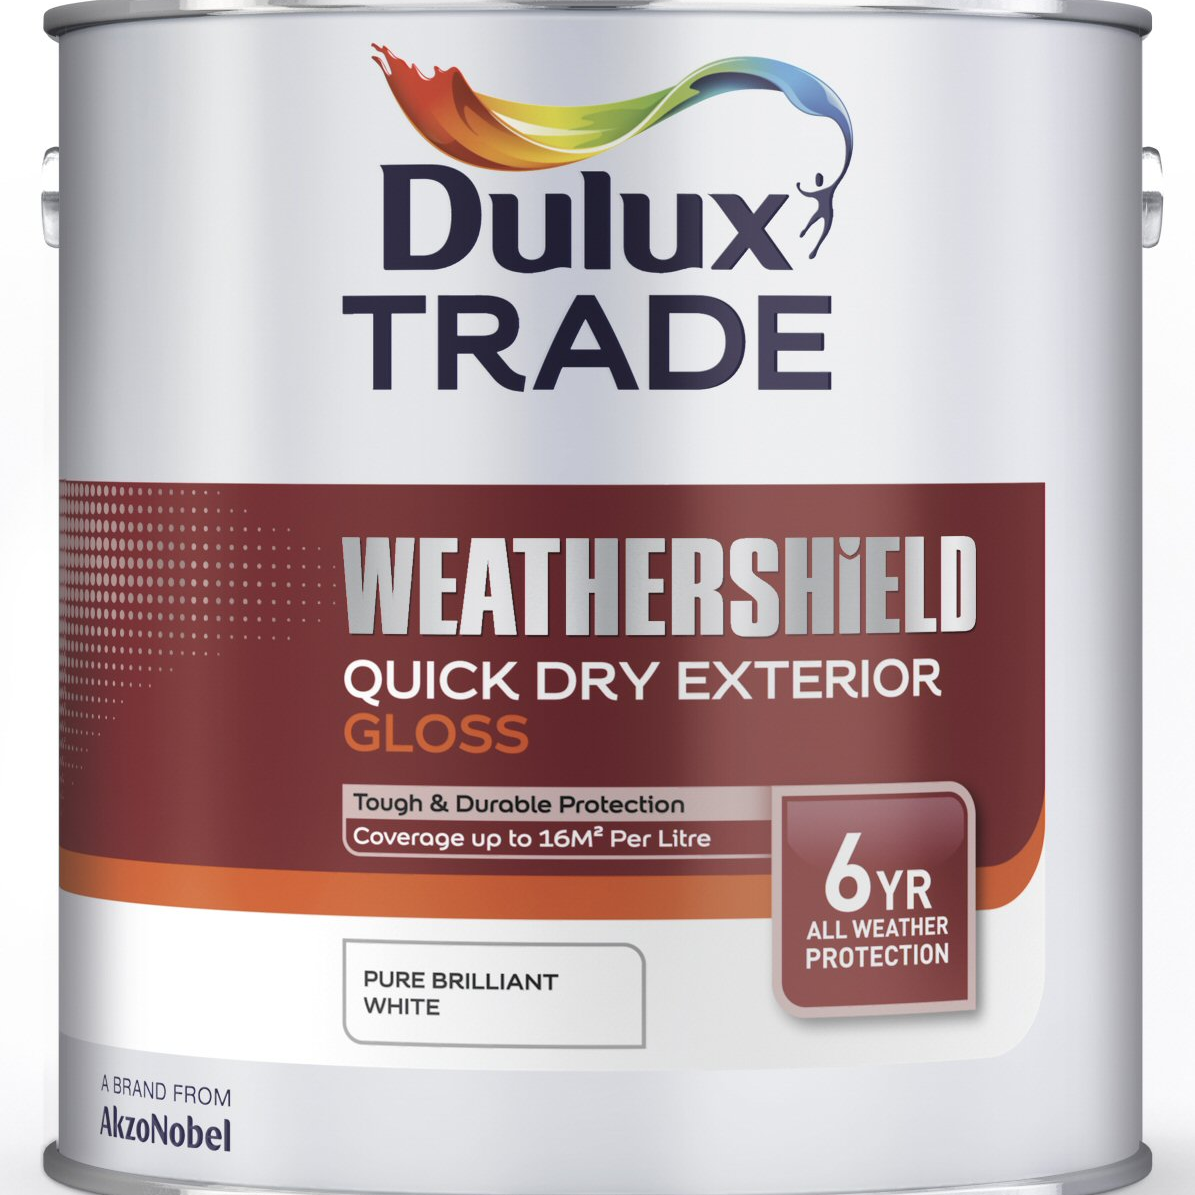 Exterior Gloss Paint Colours Part - 25: Dulux Trade Weathershield Quick Dry Exterior Gloss Custom Mixed Colours